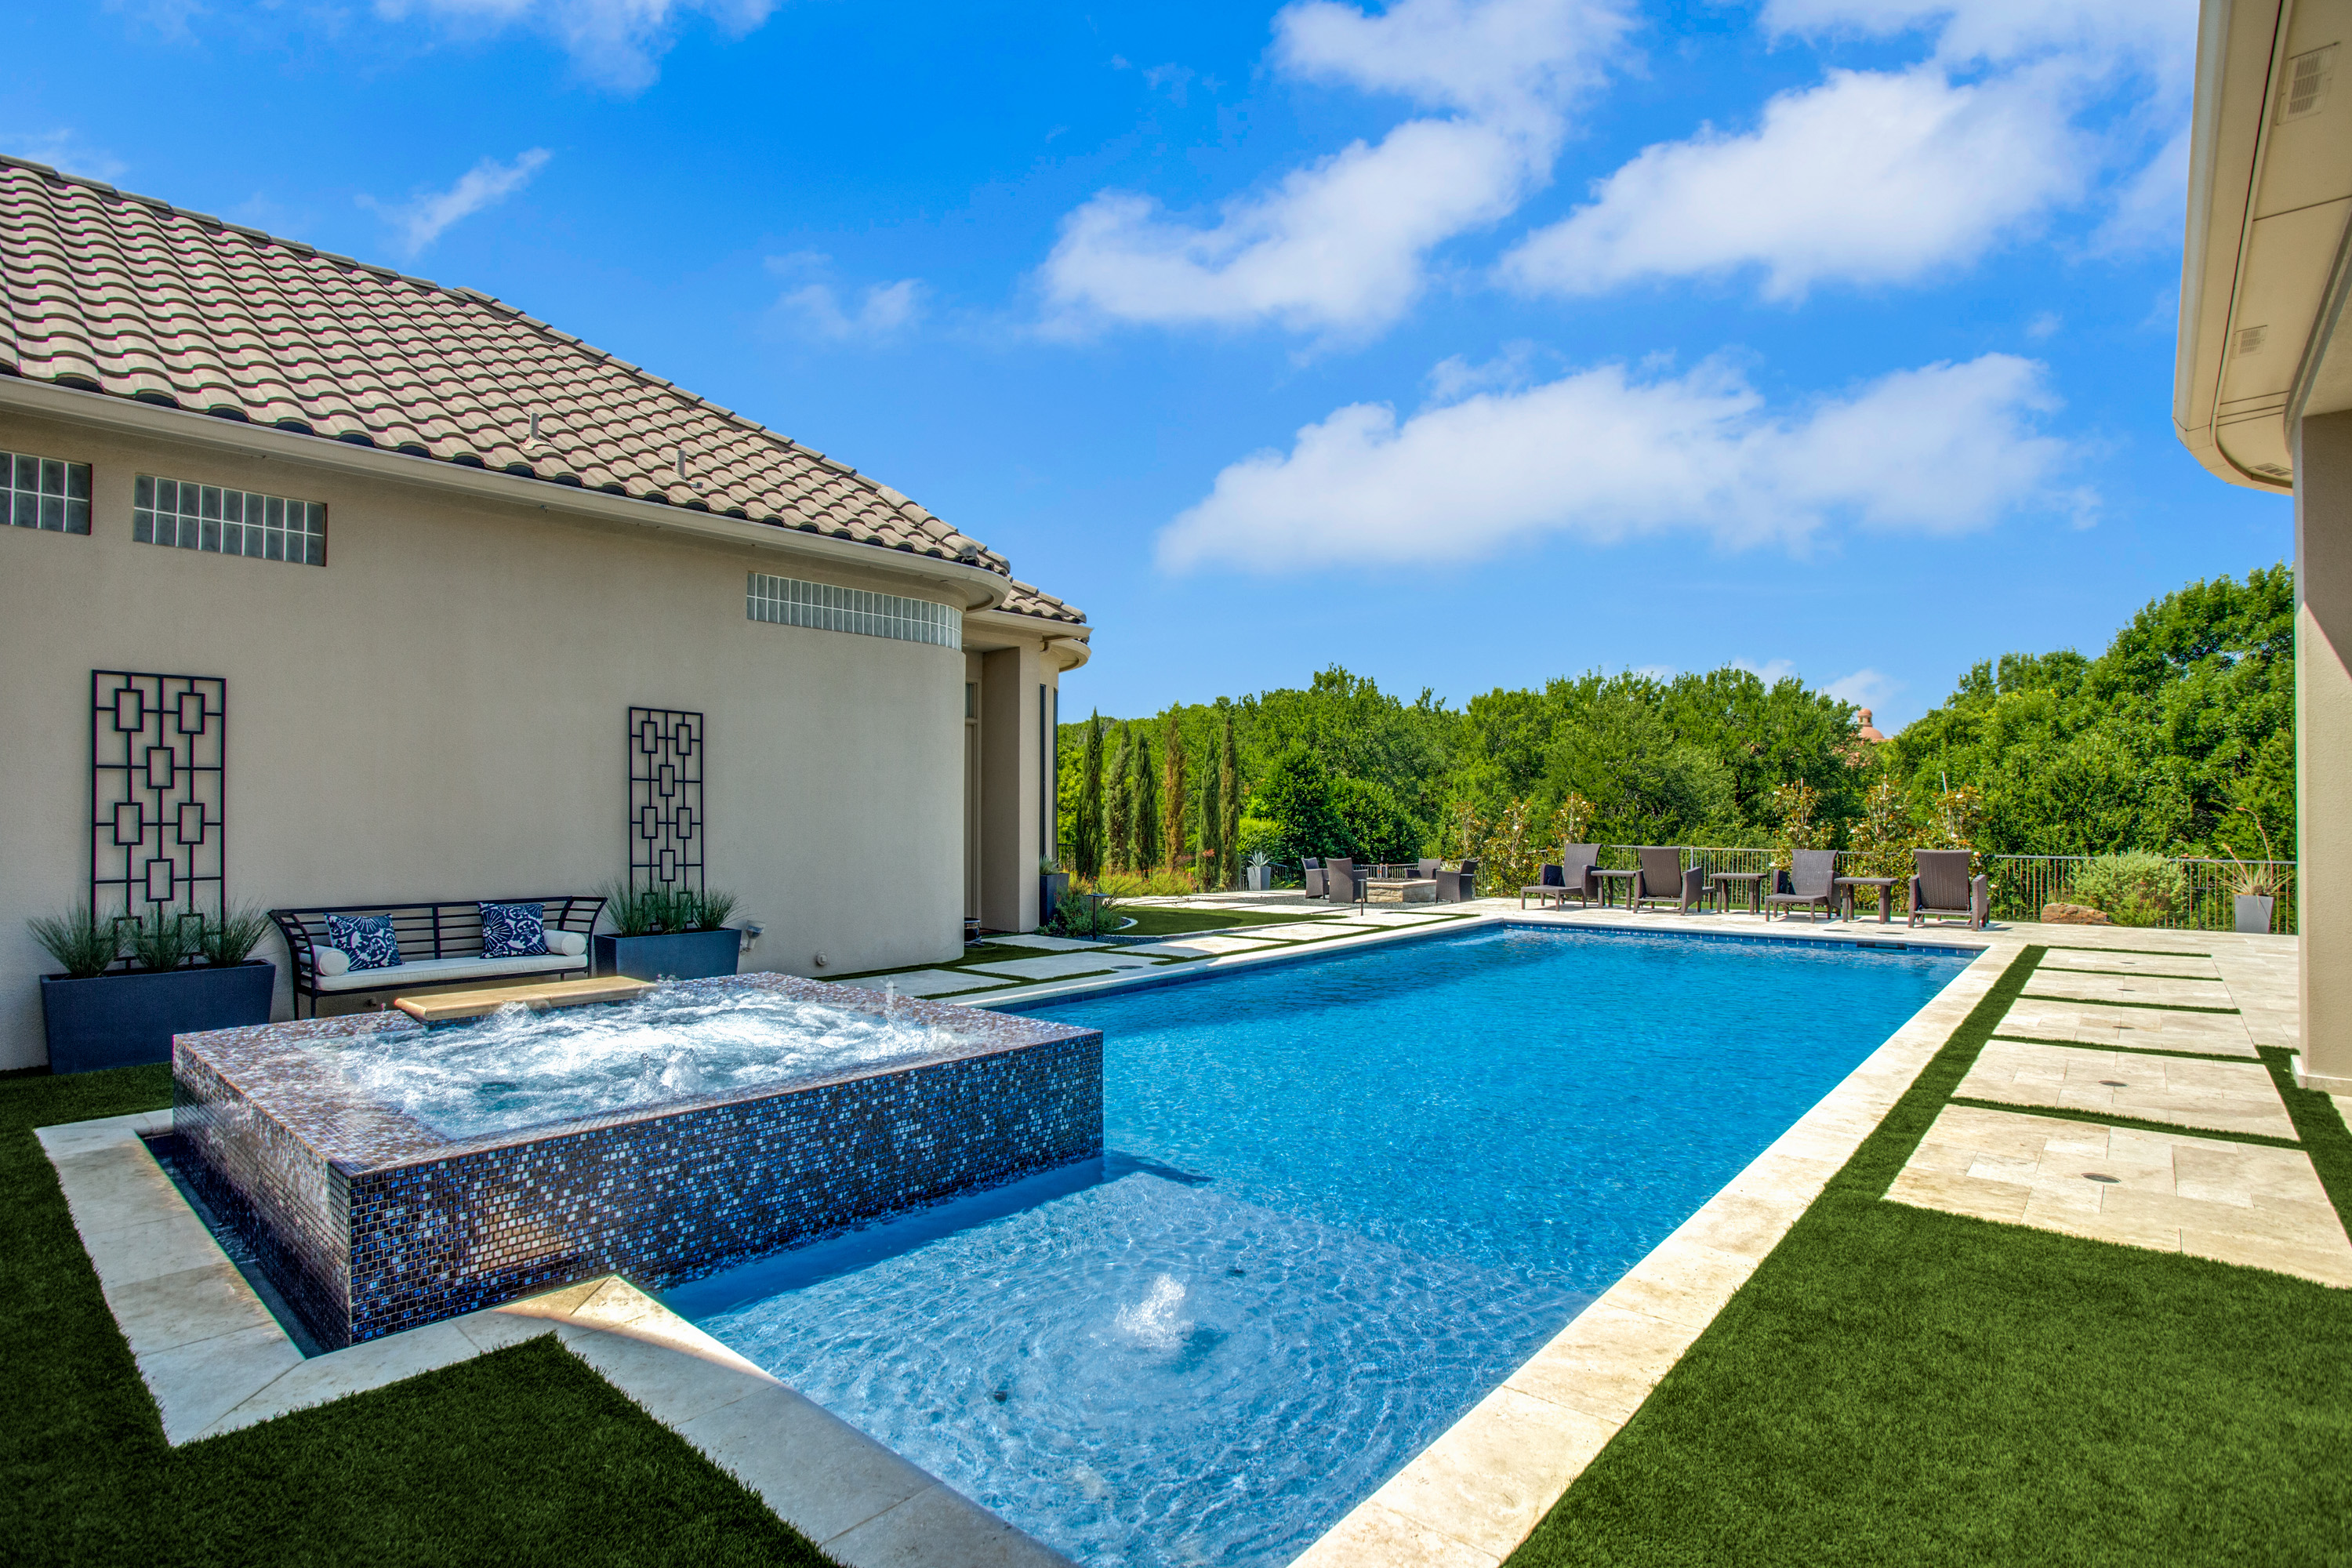 Gold_Medal_Pools-Residential_Pool_Straight_Line_Style-Frisco-TX-1